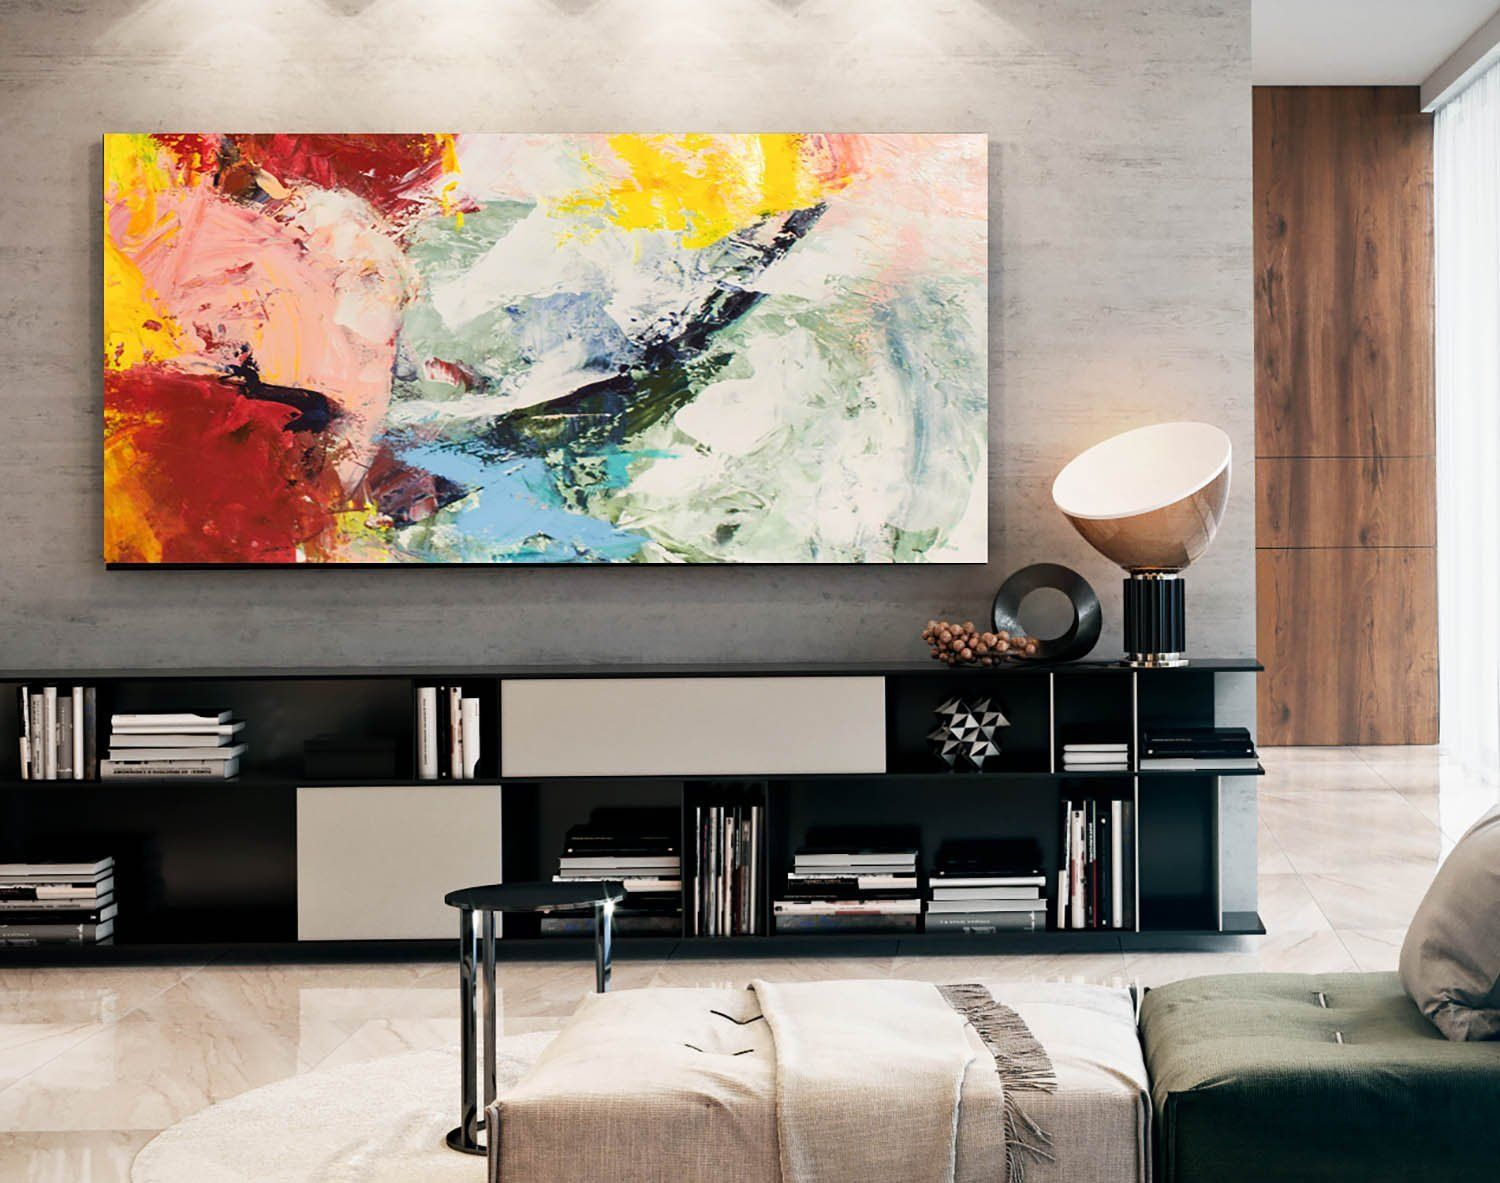 Original Paintings On Canvasliving Room Wall Artmodern Etsy